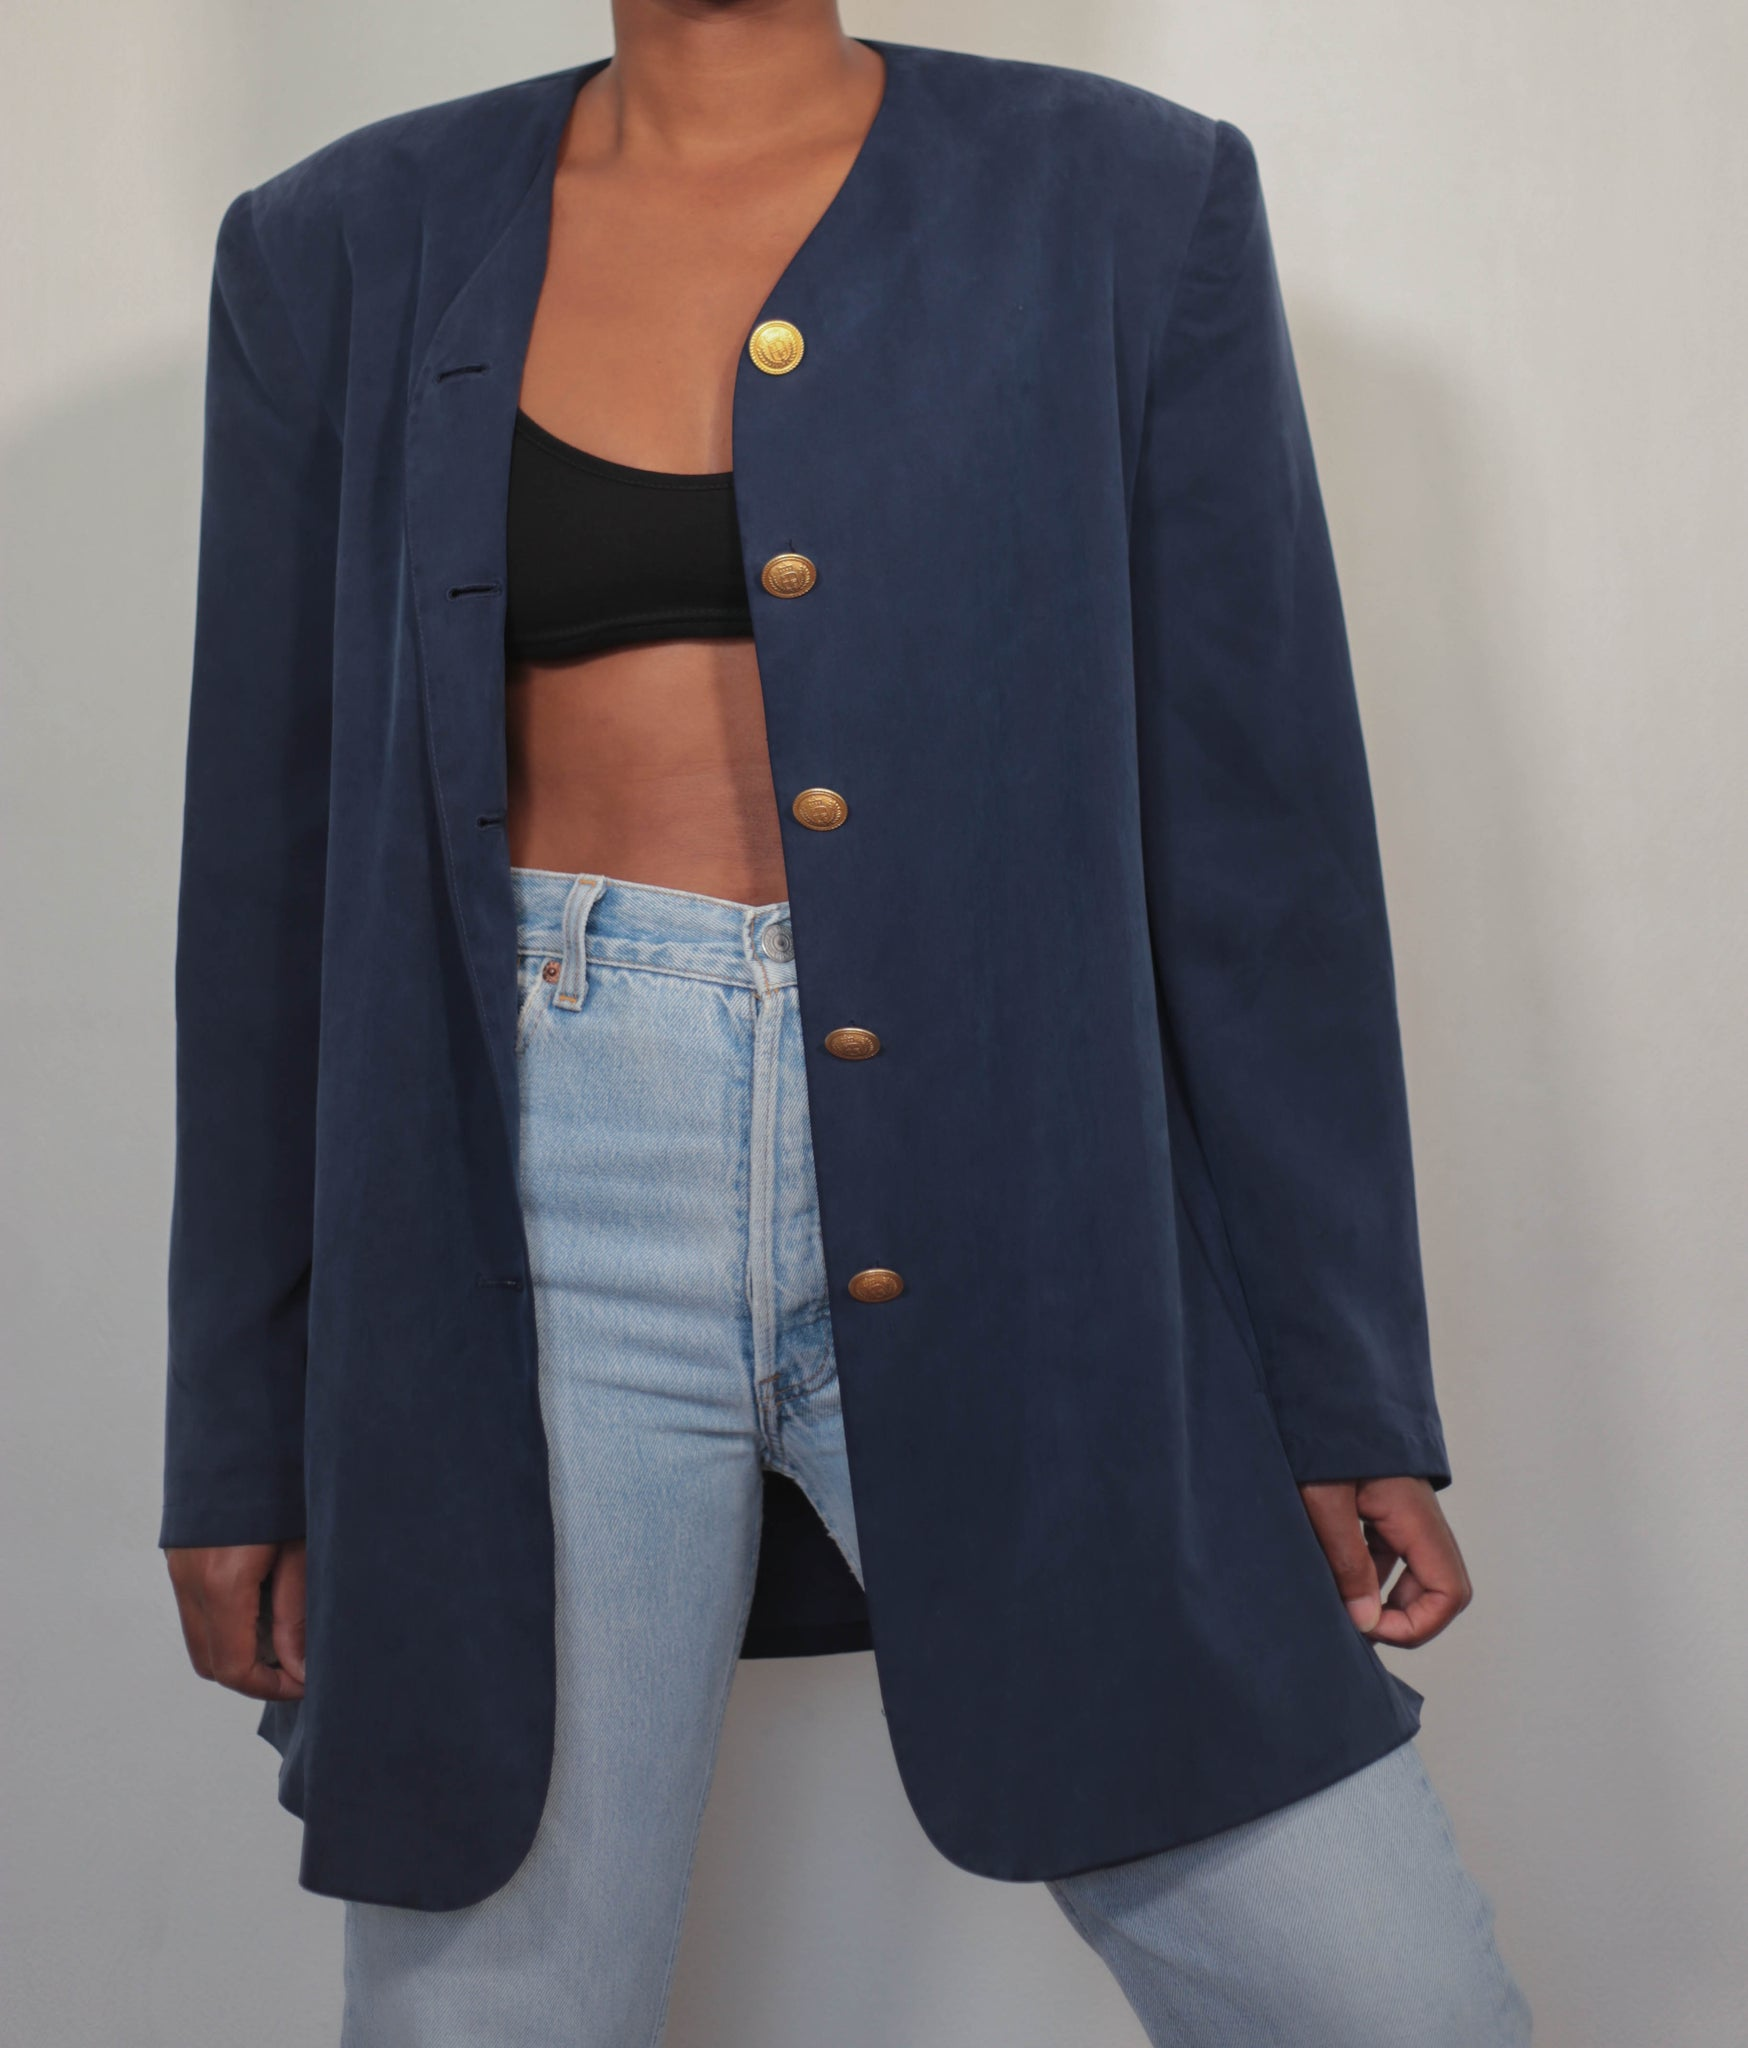 Silk dark blue blazer